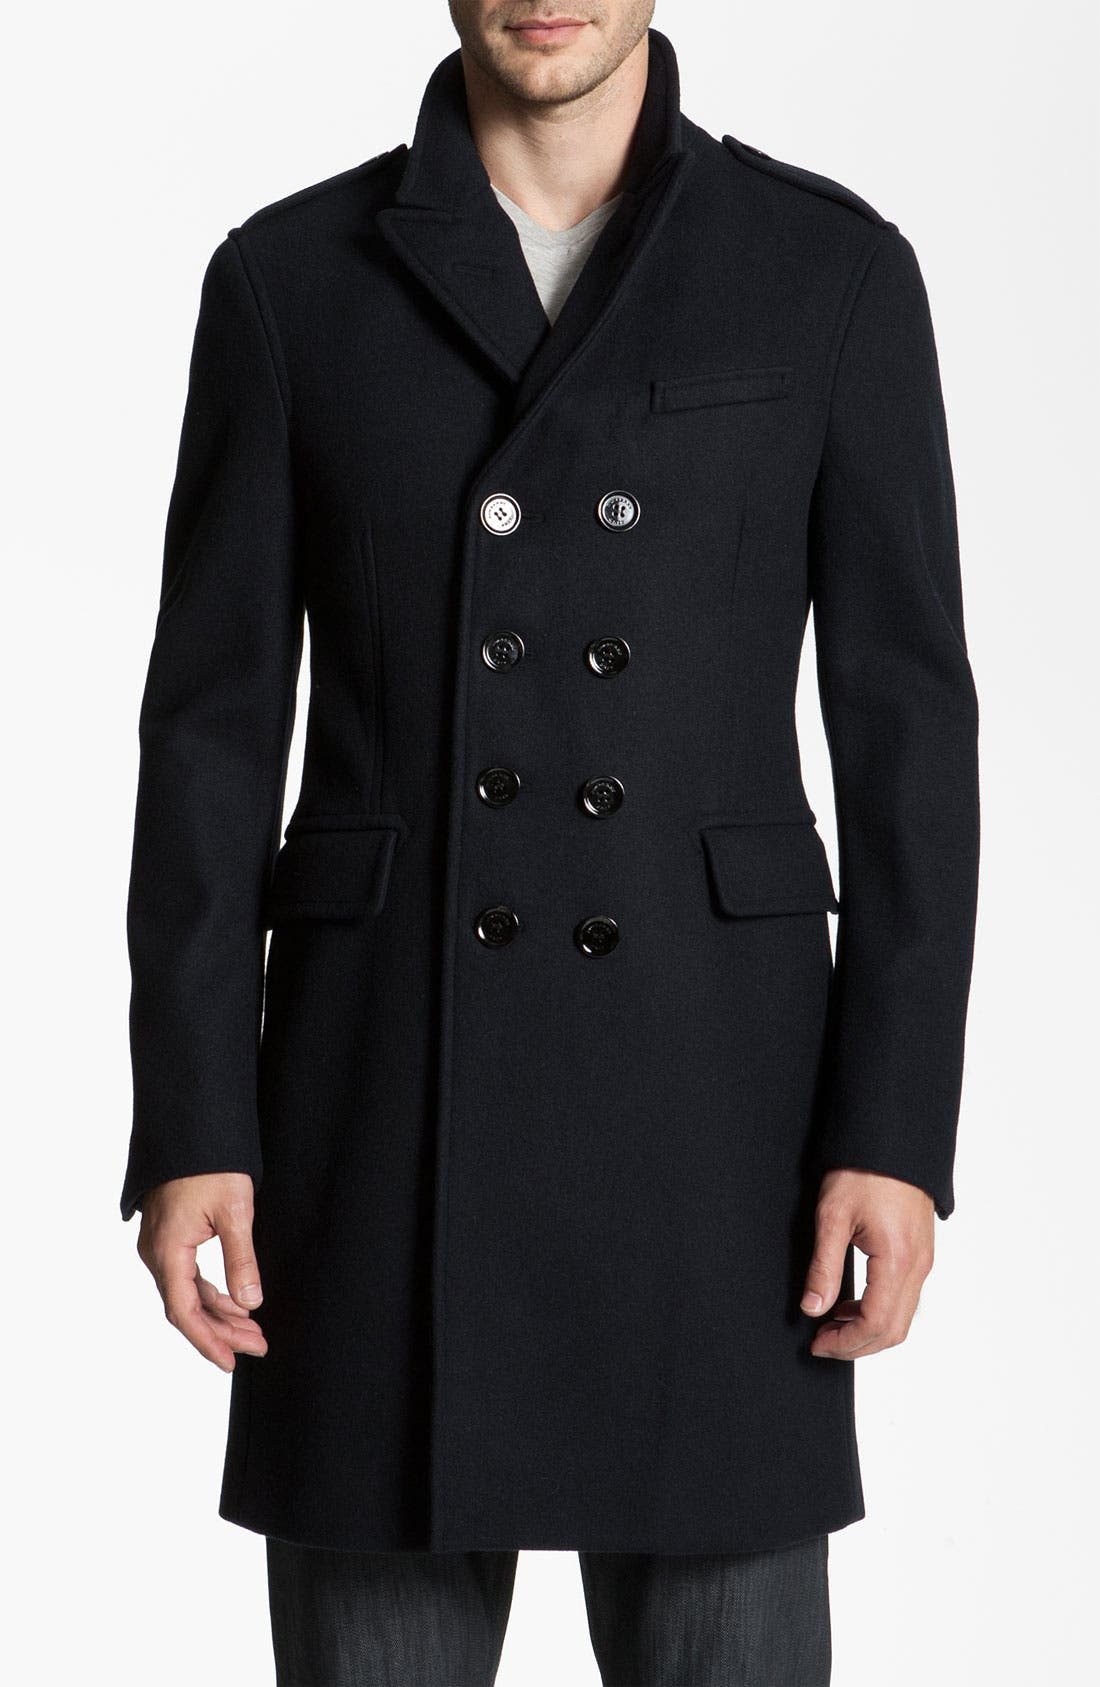 Main Image - Burberry Brit Wool Blend Trim Fit Trench Coat